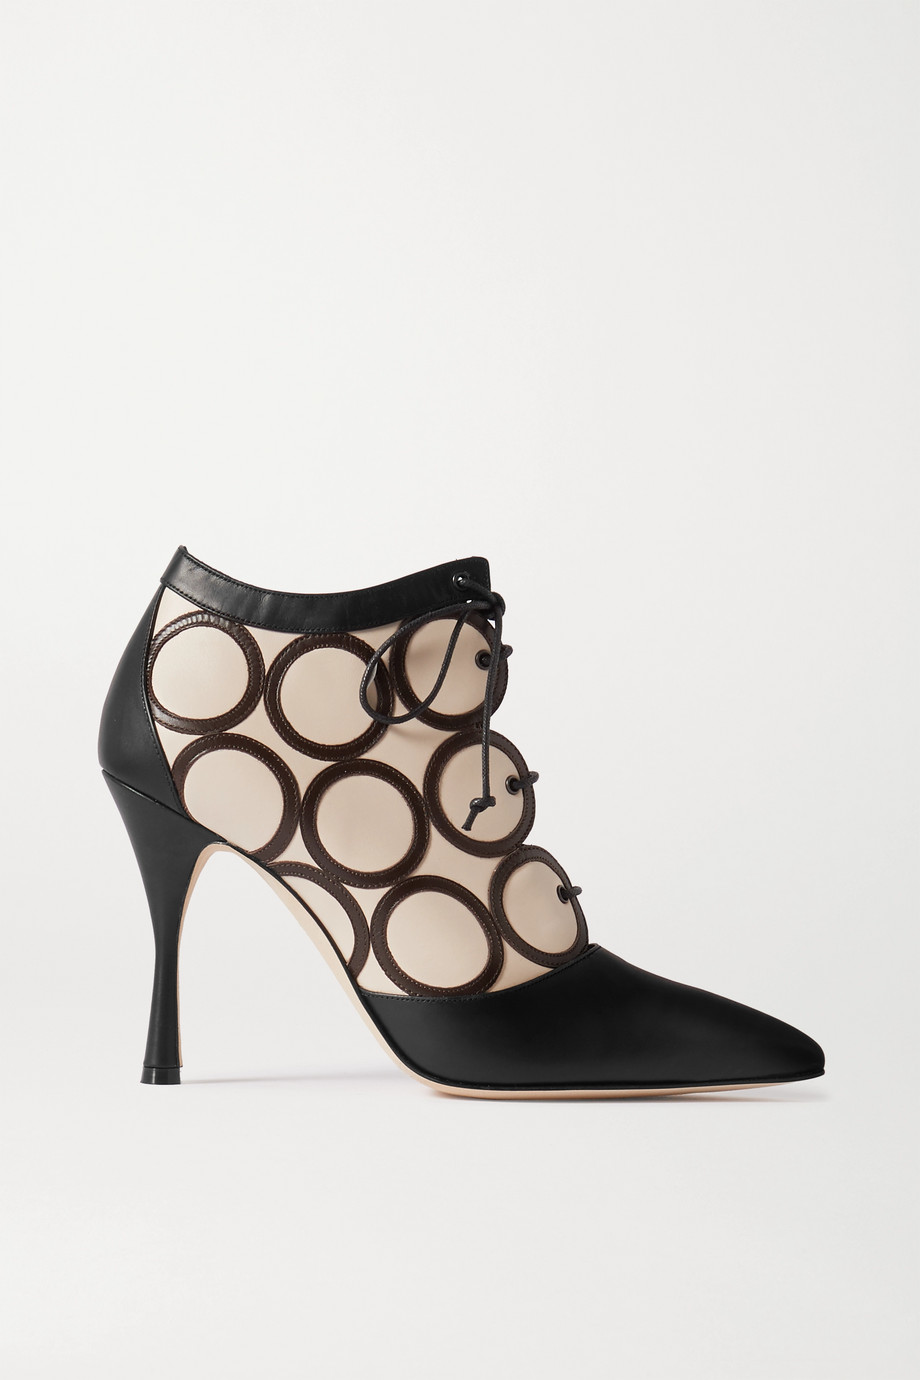 Manolo Blahnik Fanku lace-up appliquéd leather ankle boots